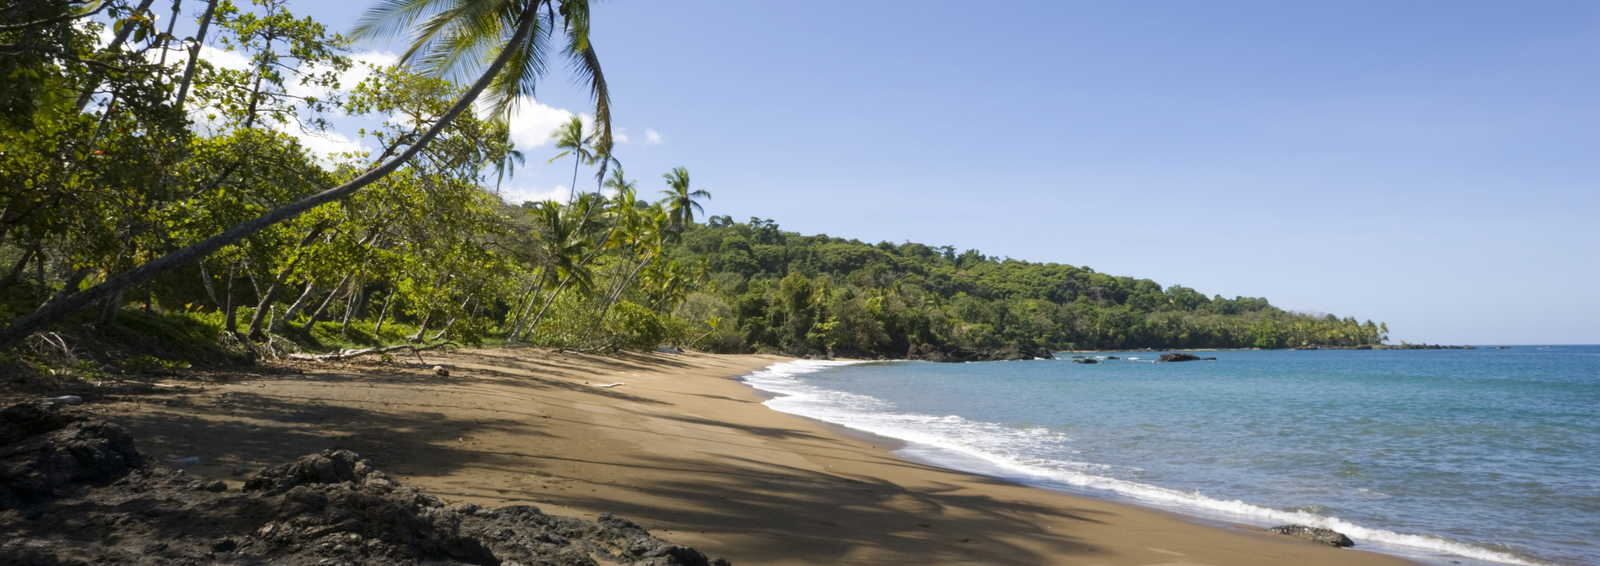 Costa Rica's beautiful coastline